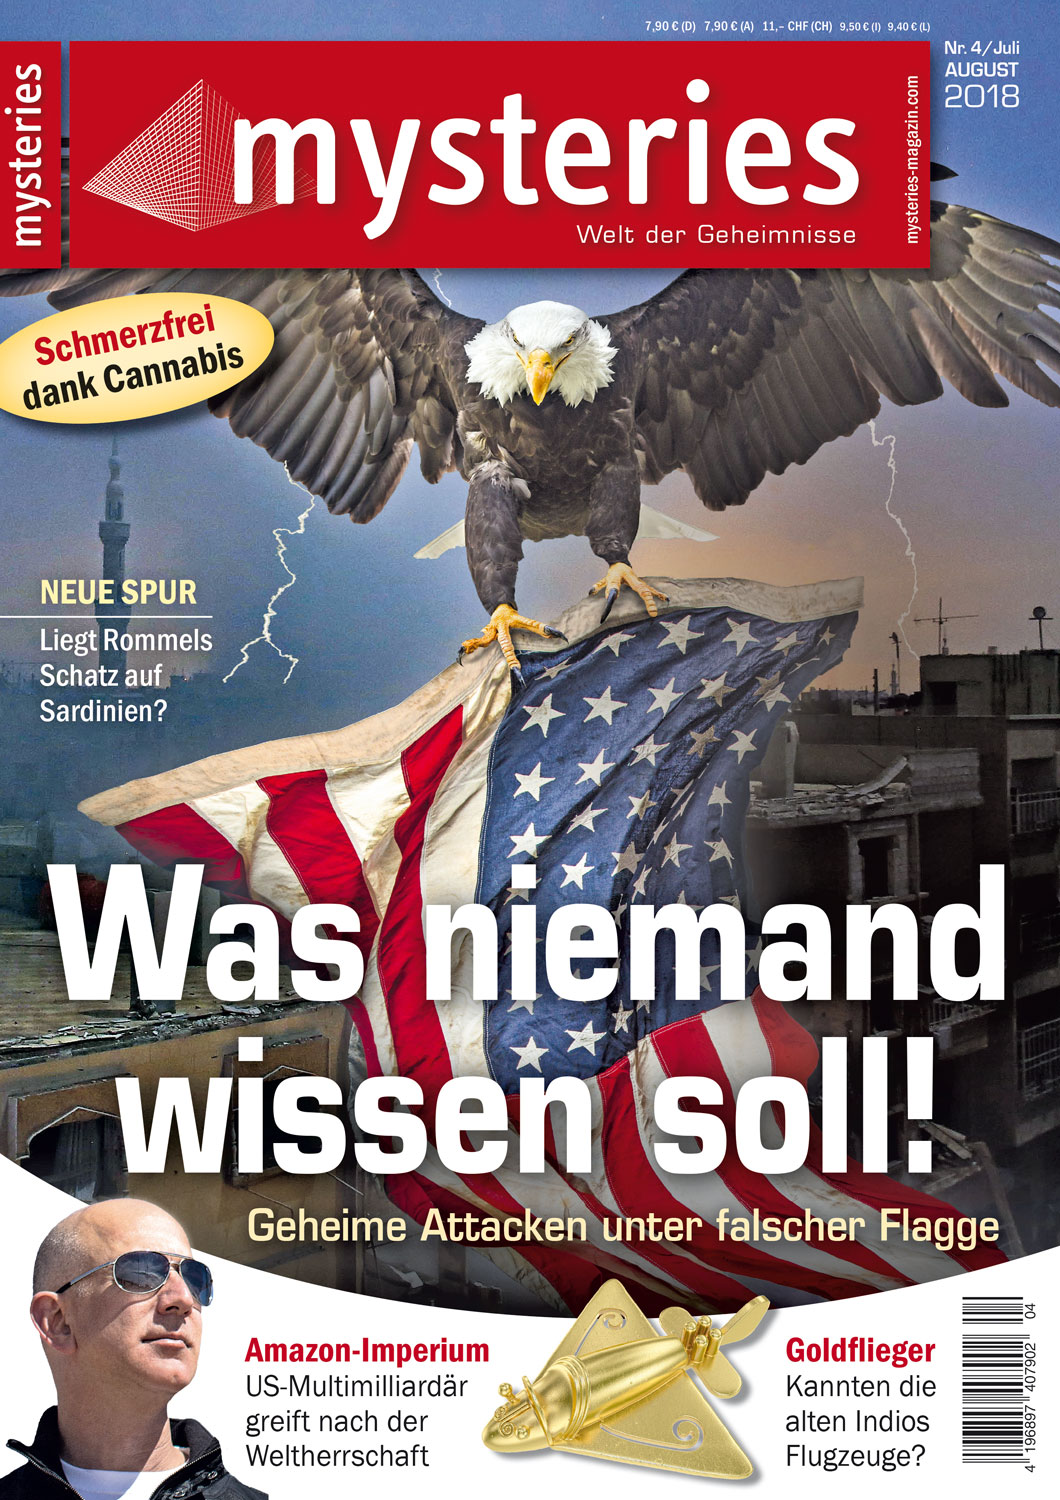 mysteries - Ausgabe Juli/August 2018